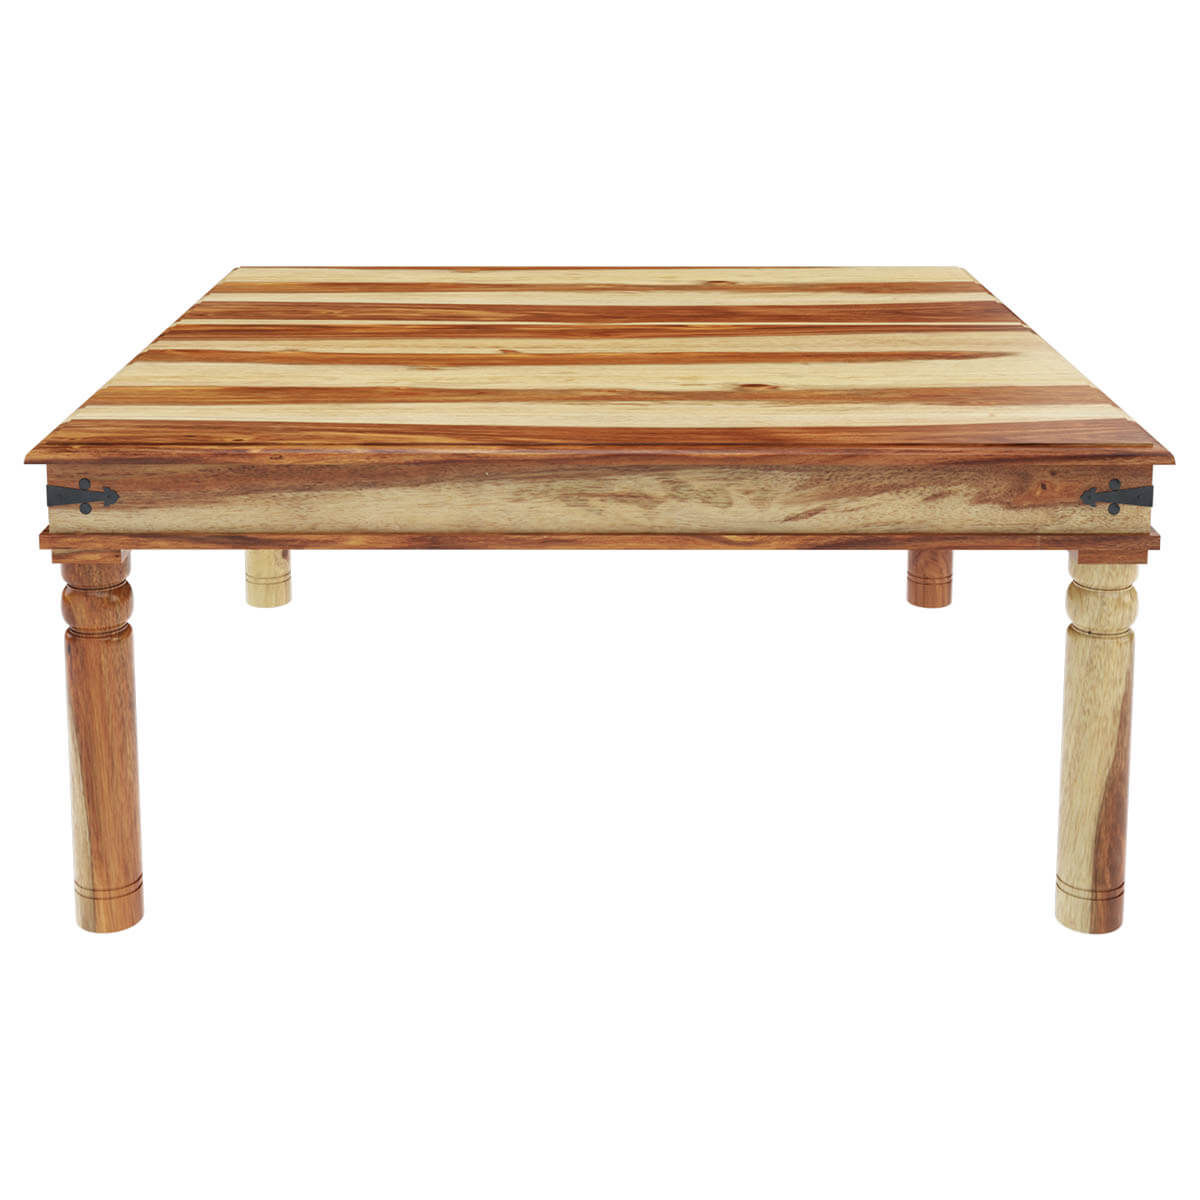 santa fe collection dallas ranch rustic solid wood square dining table